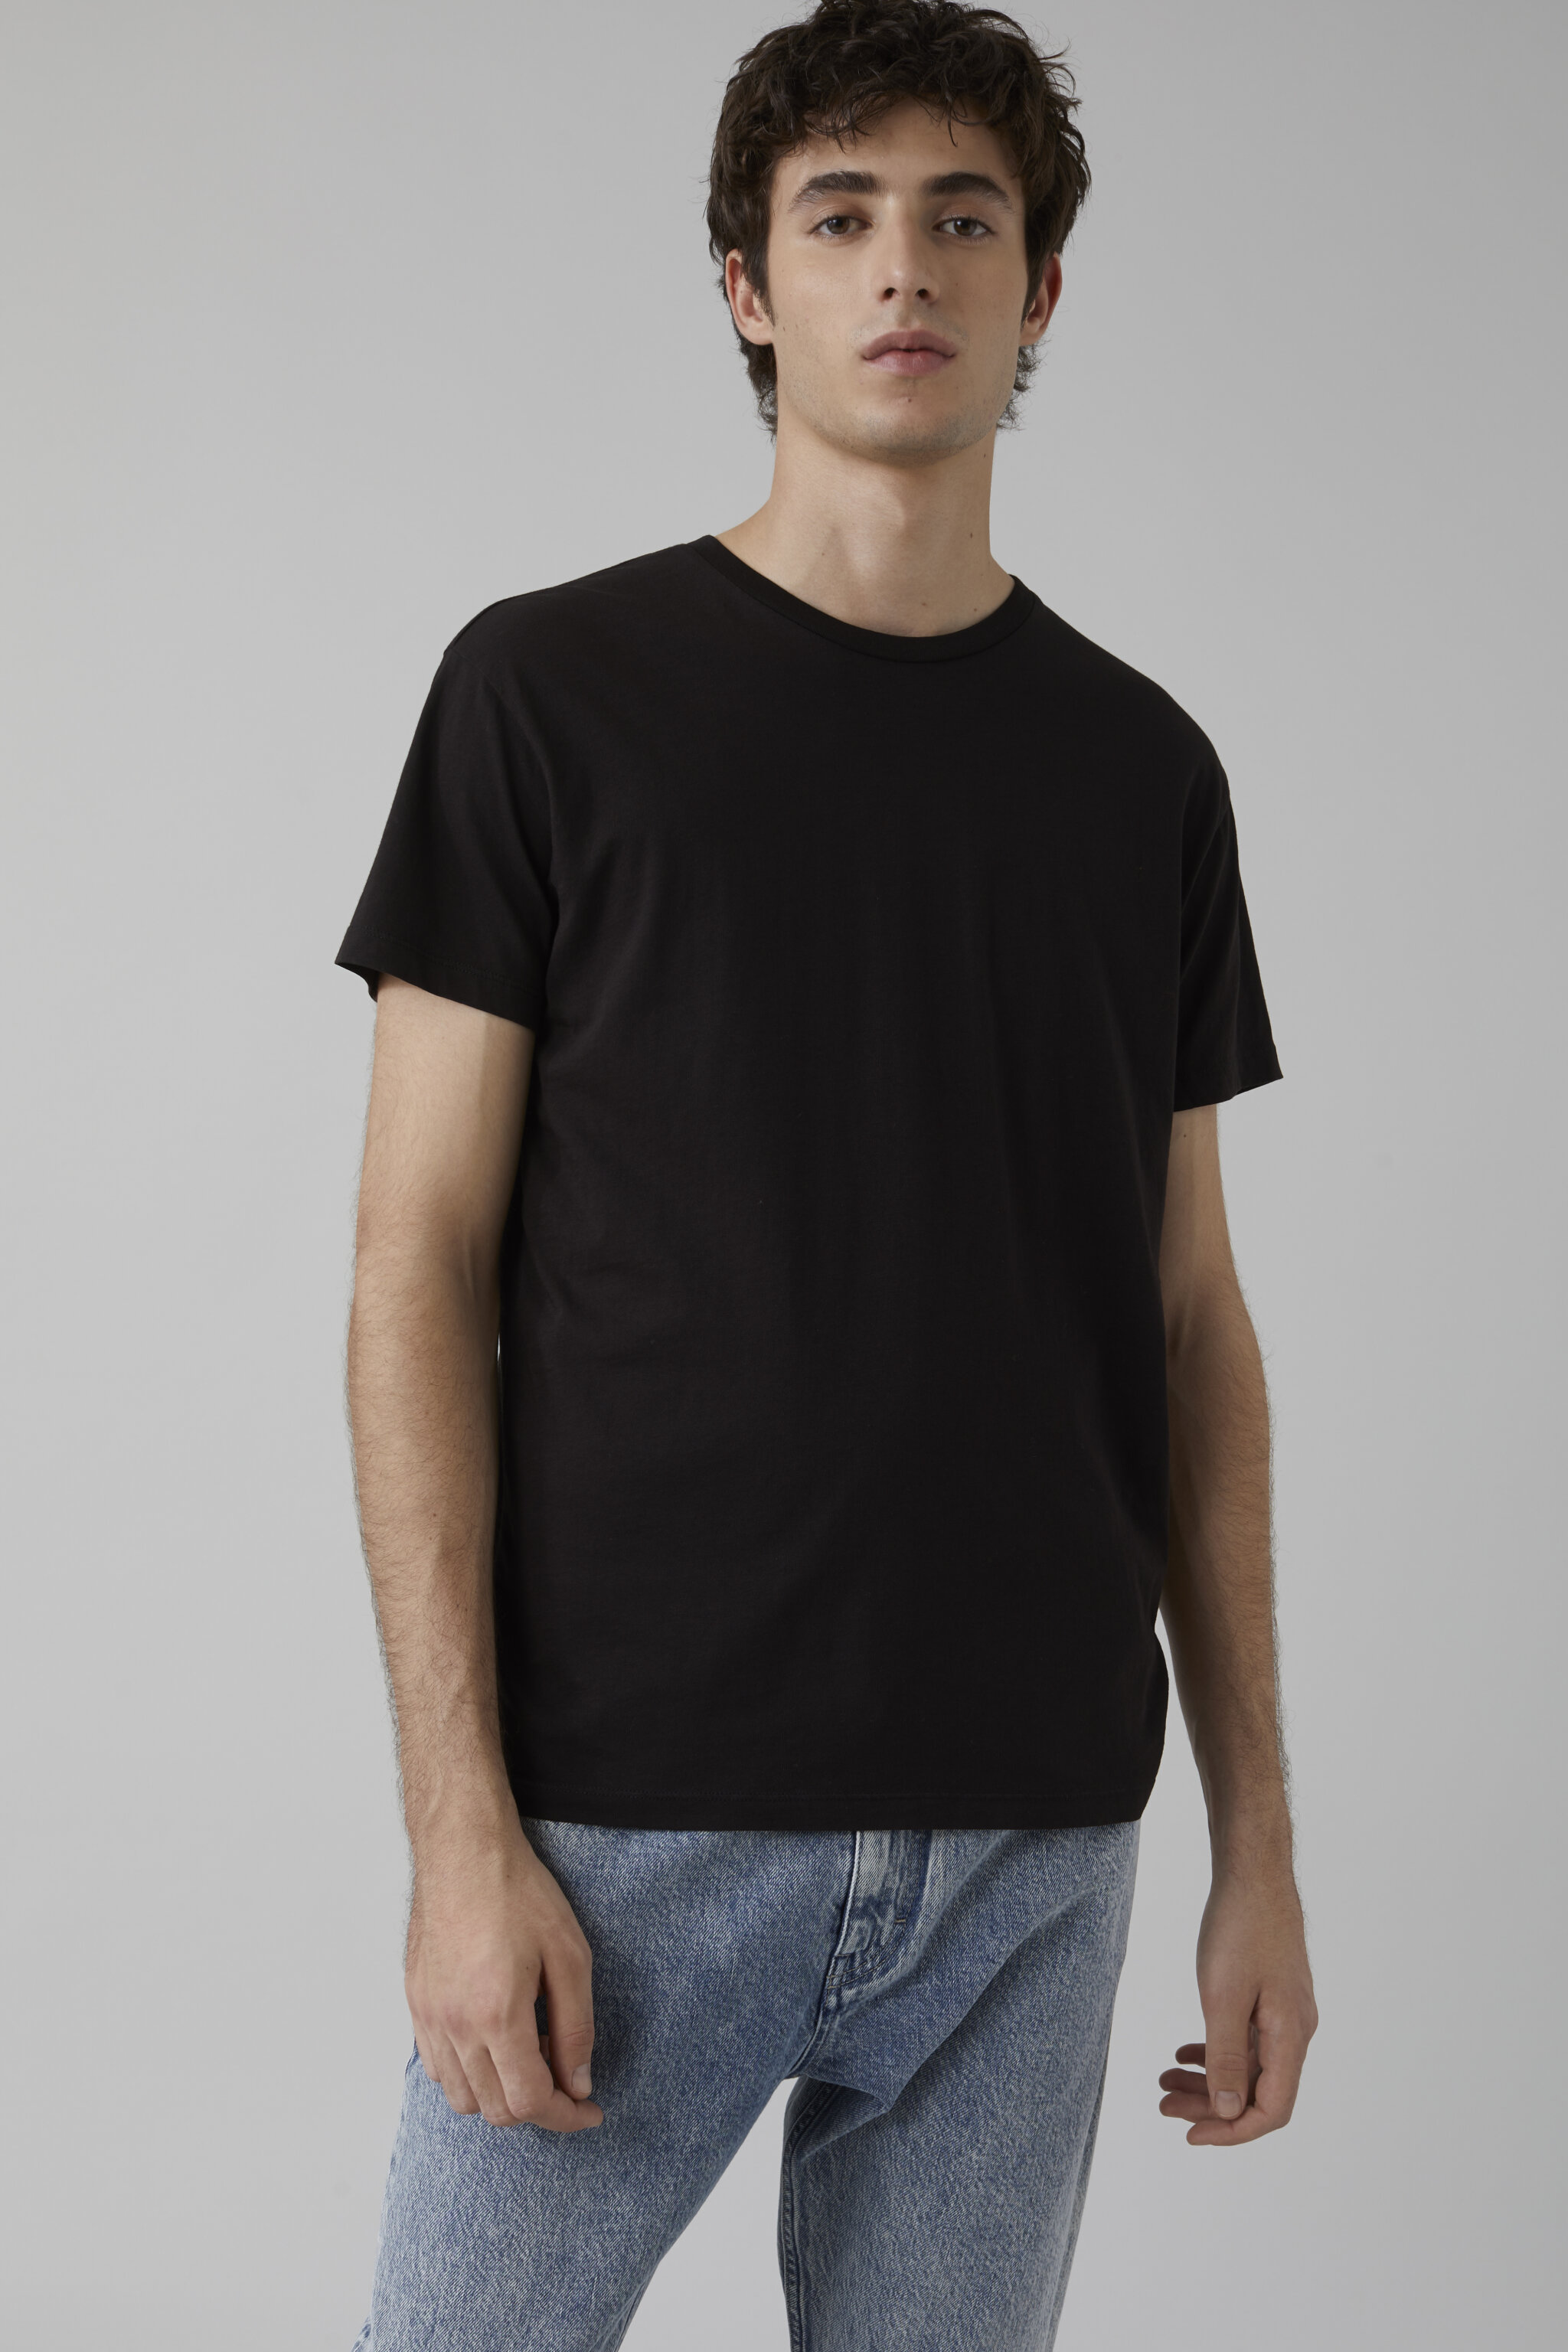 Herren CLOSED Basic T-Shirt black | 4054736219416